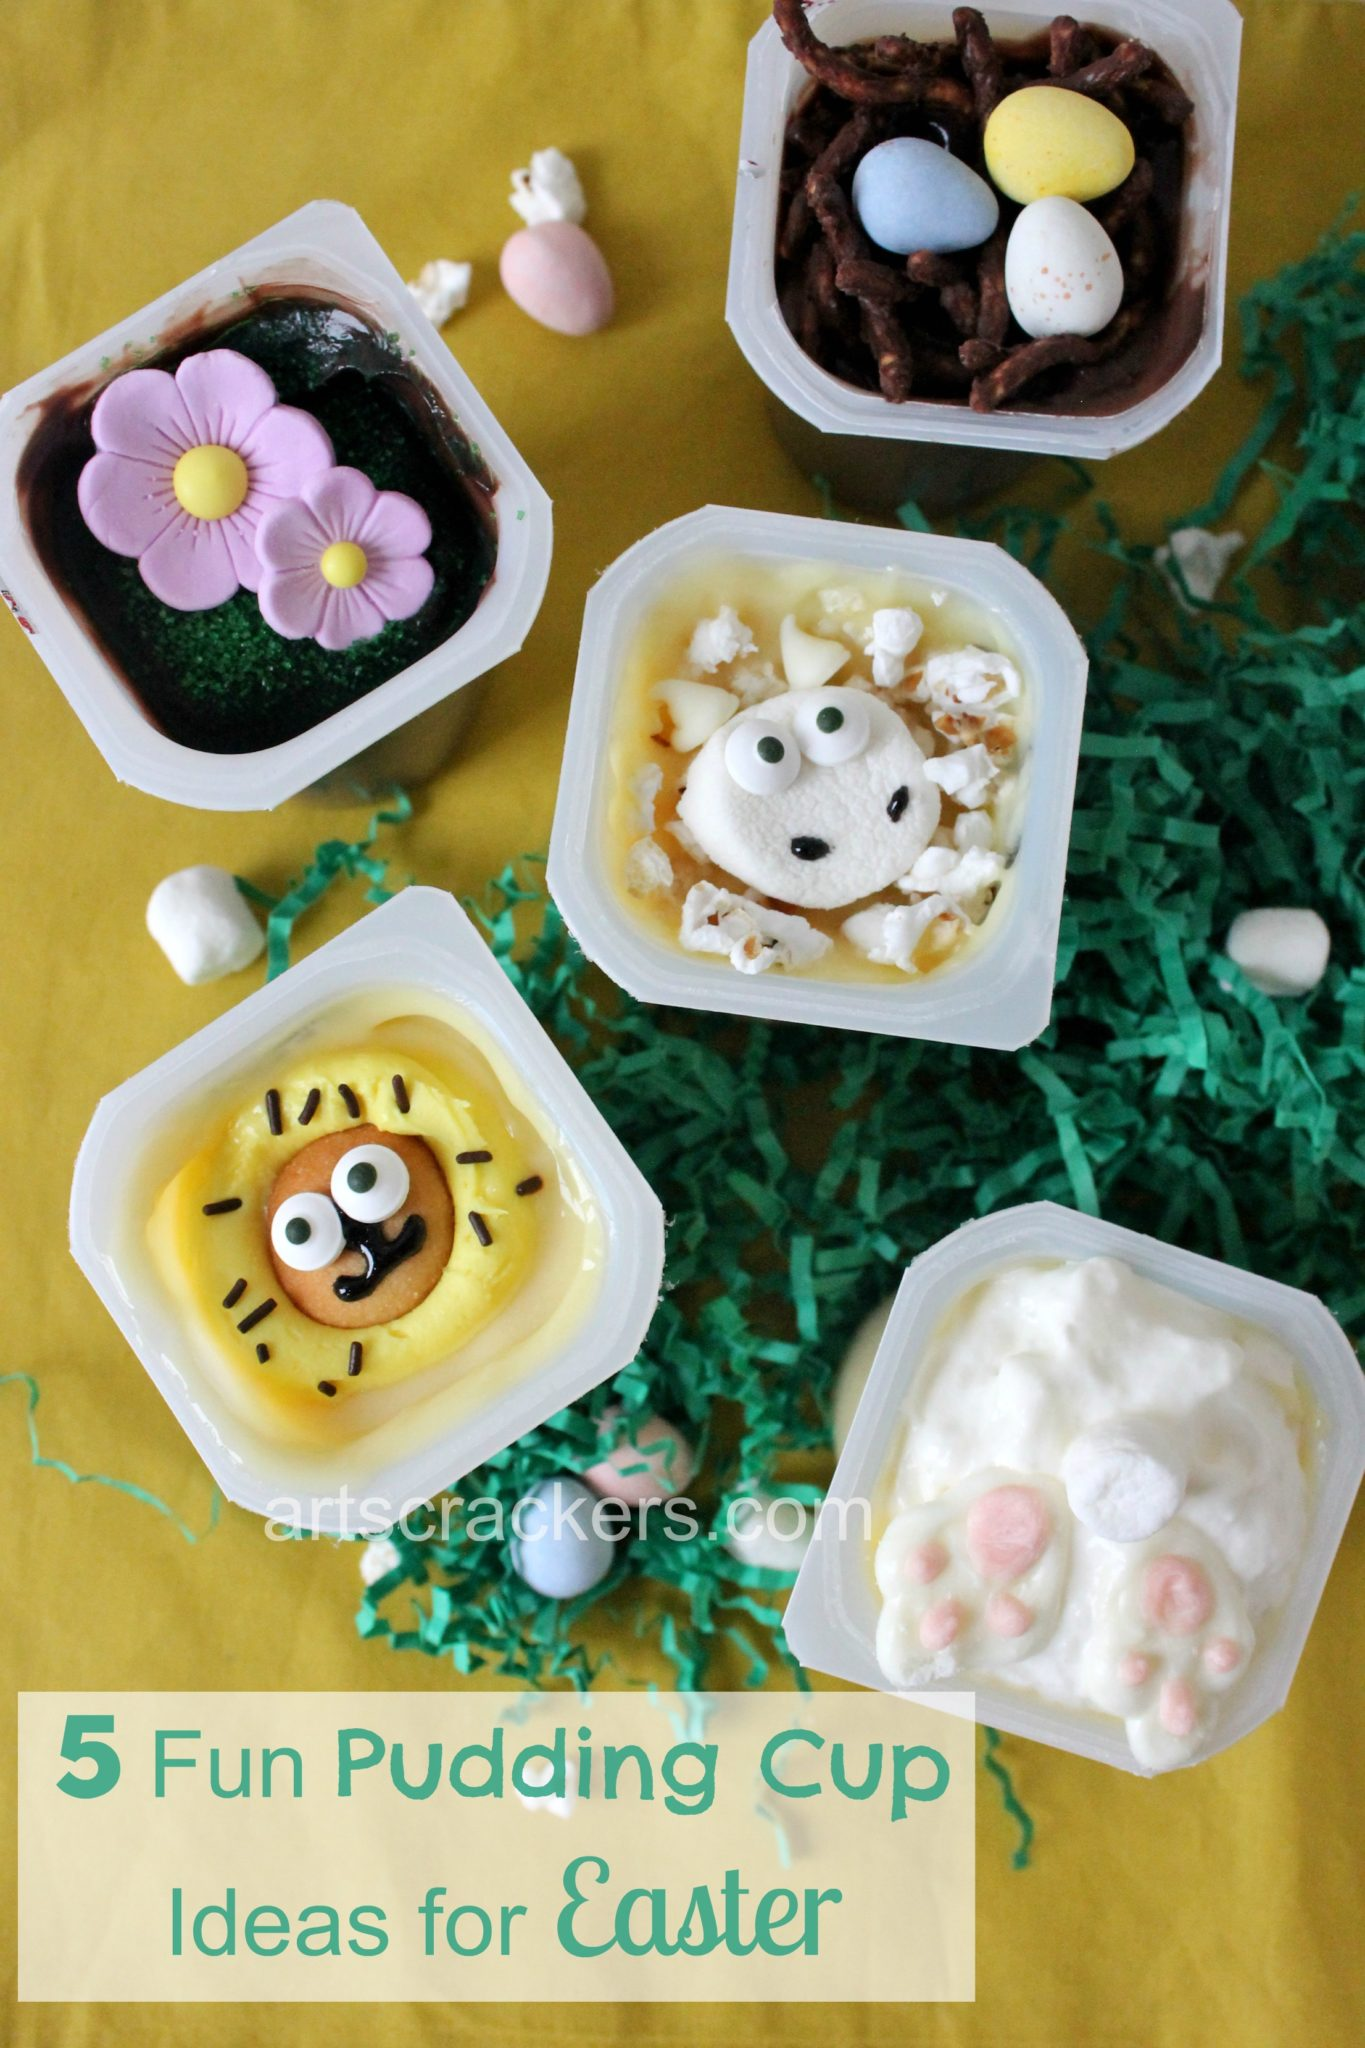 Snack Pack Mix Ins Five Fun Pudding Cup Ideas for Easter. Click the picture to view instructions.